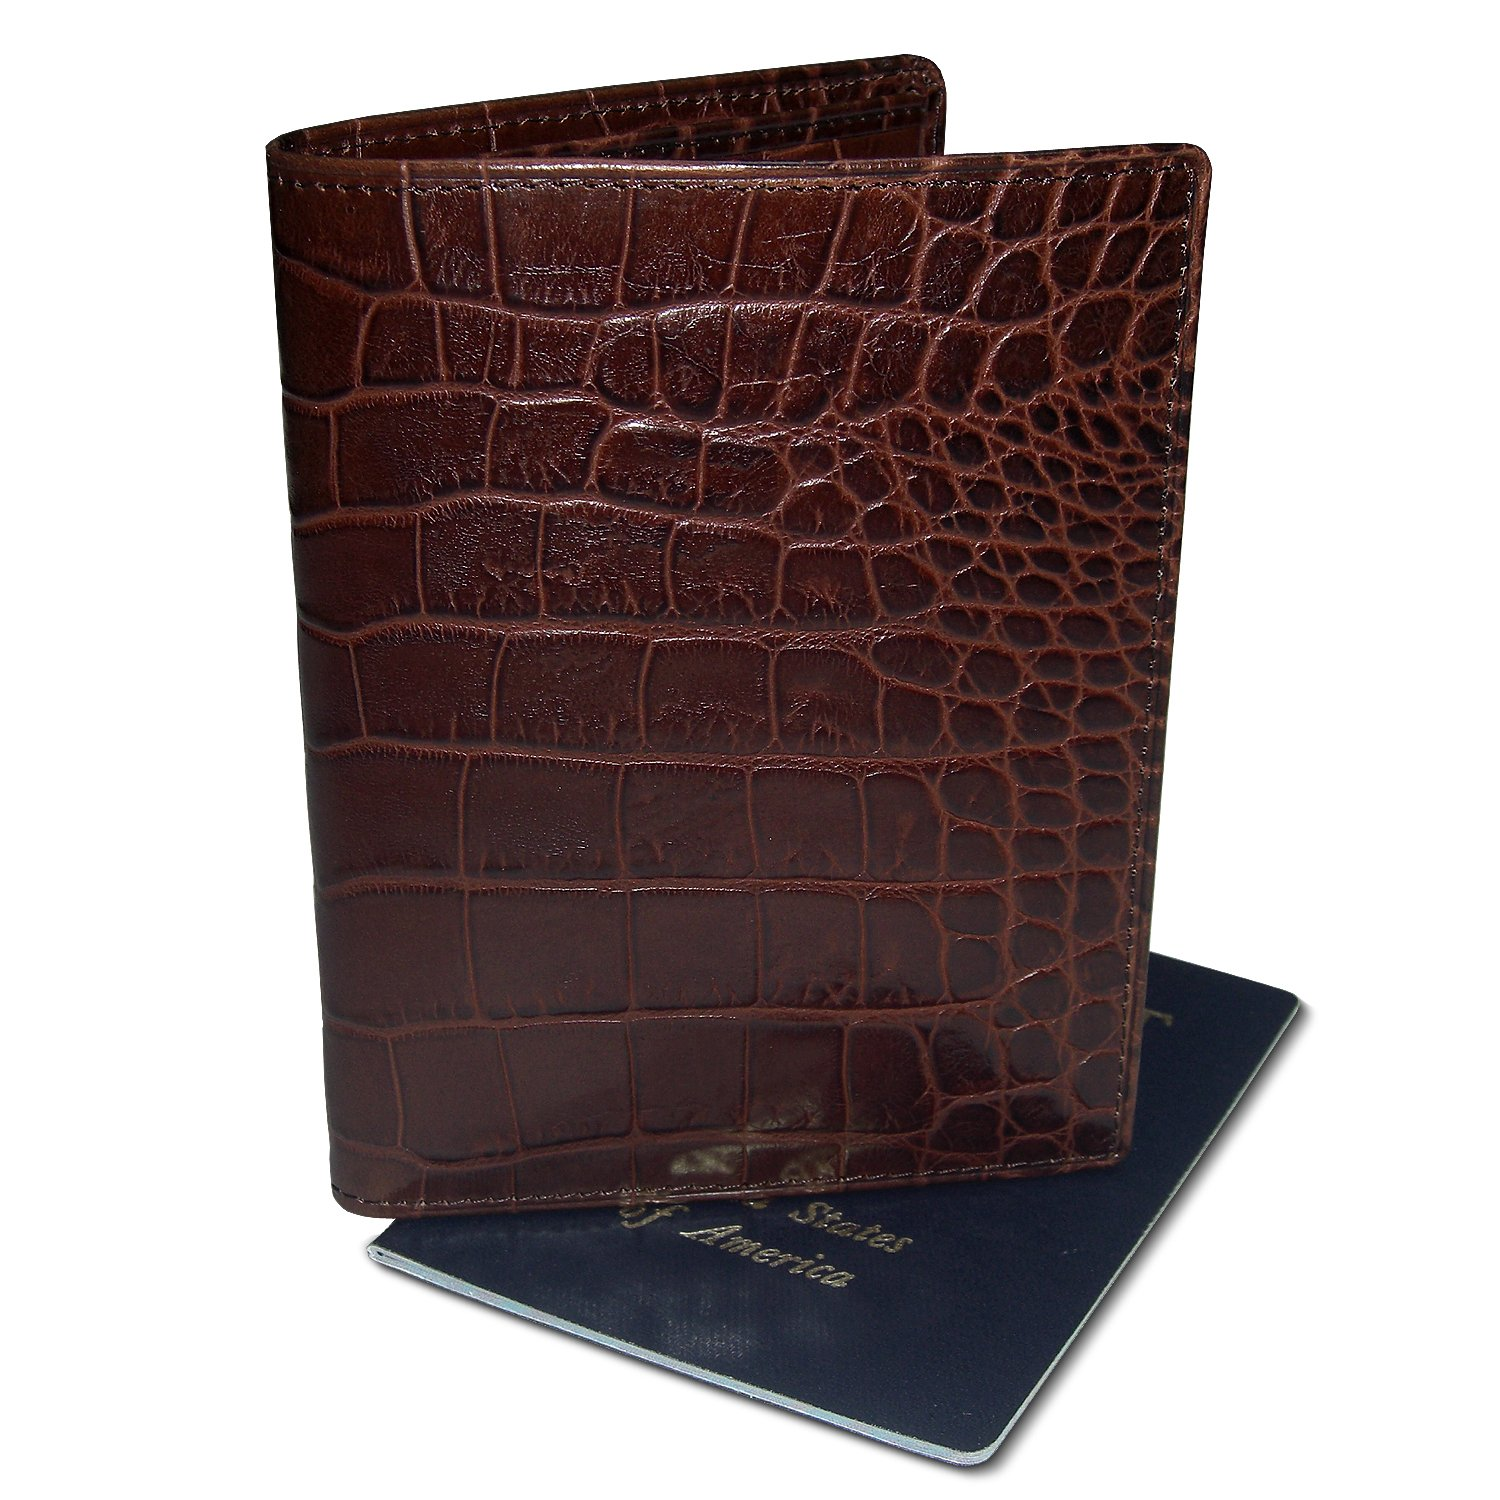 DataSafe Deluxe Italian Leather Passport Wallet with RFID Sheilding Security (Black) by Kena Kai (Image #4)